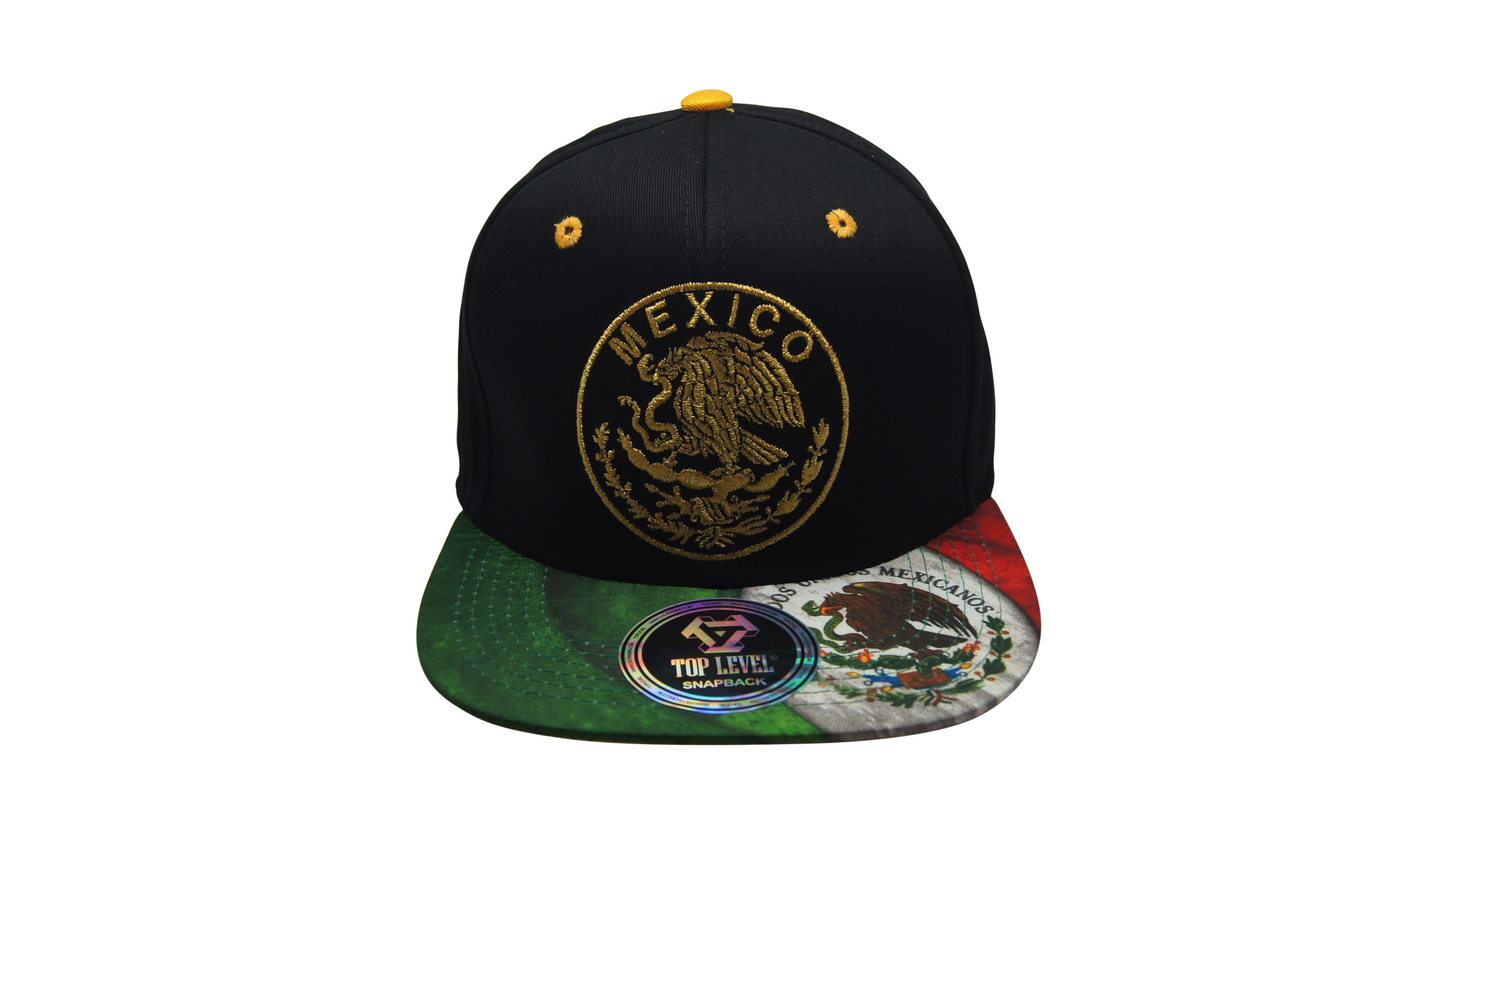 Flat Bill Mexico 3D Embroidery Black - Green Bill